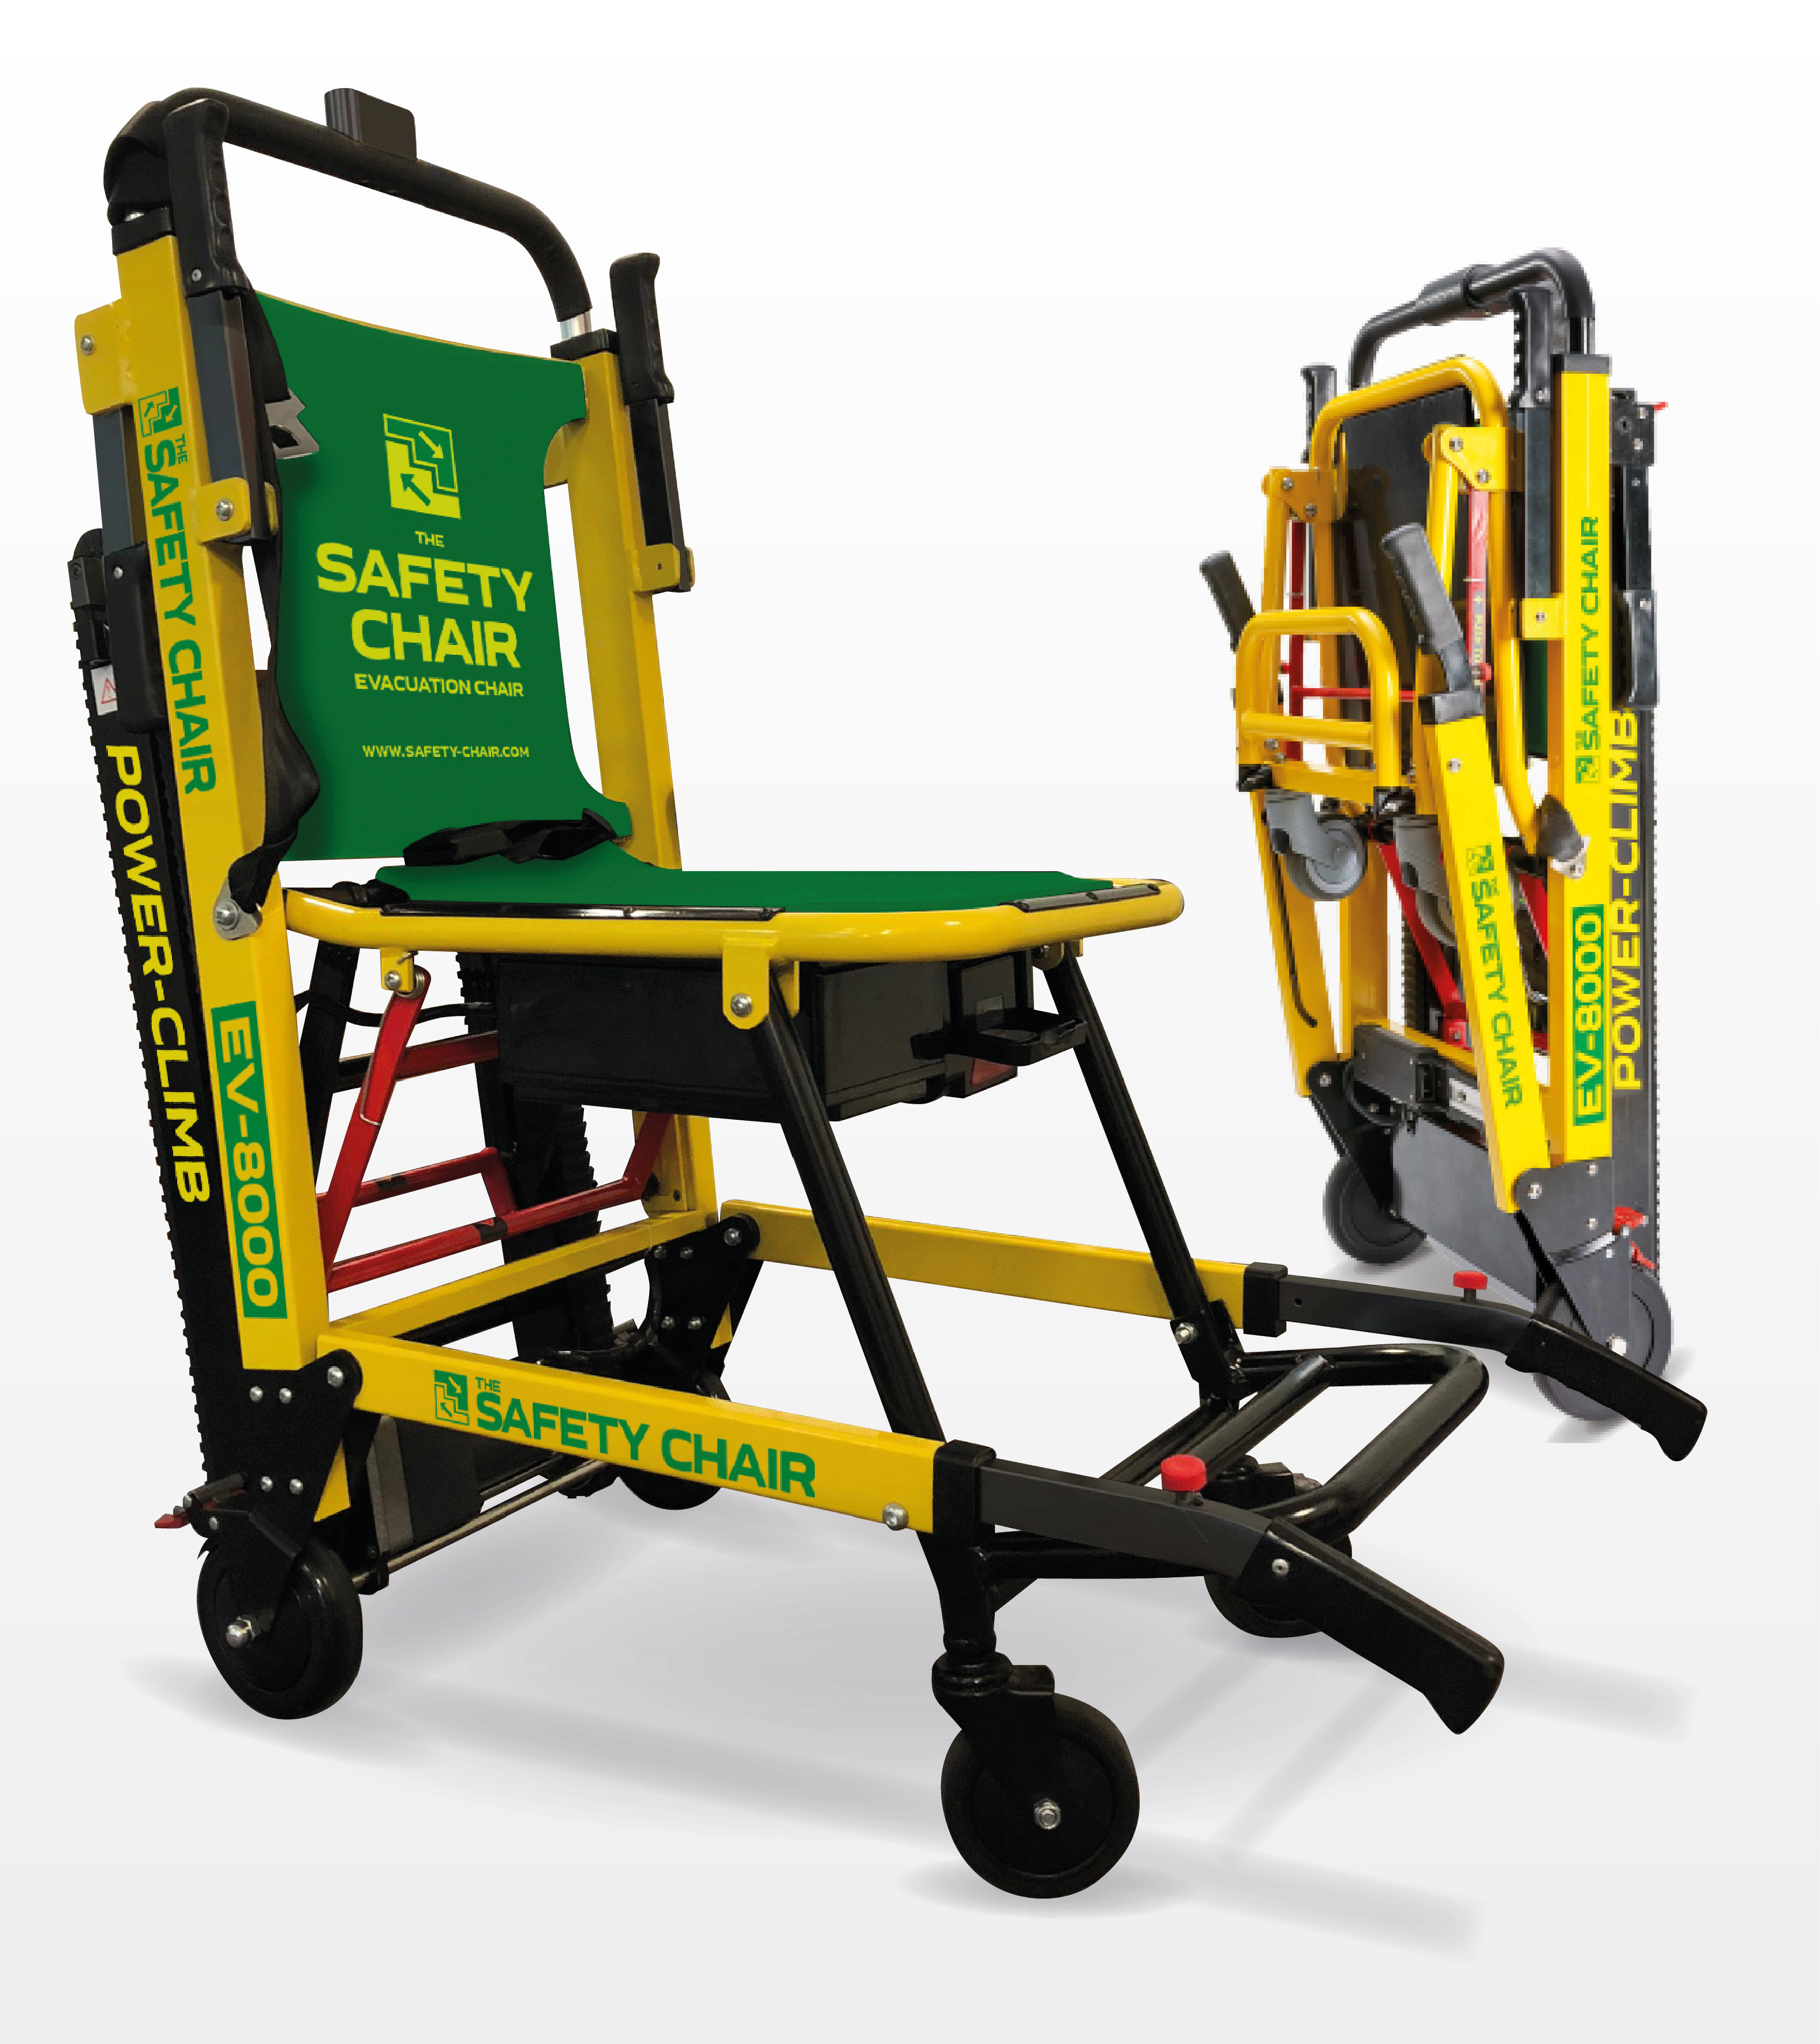 EV8000 battery operated evacuation chair